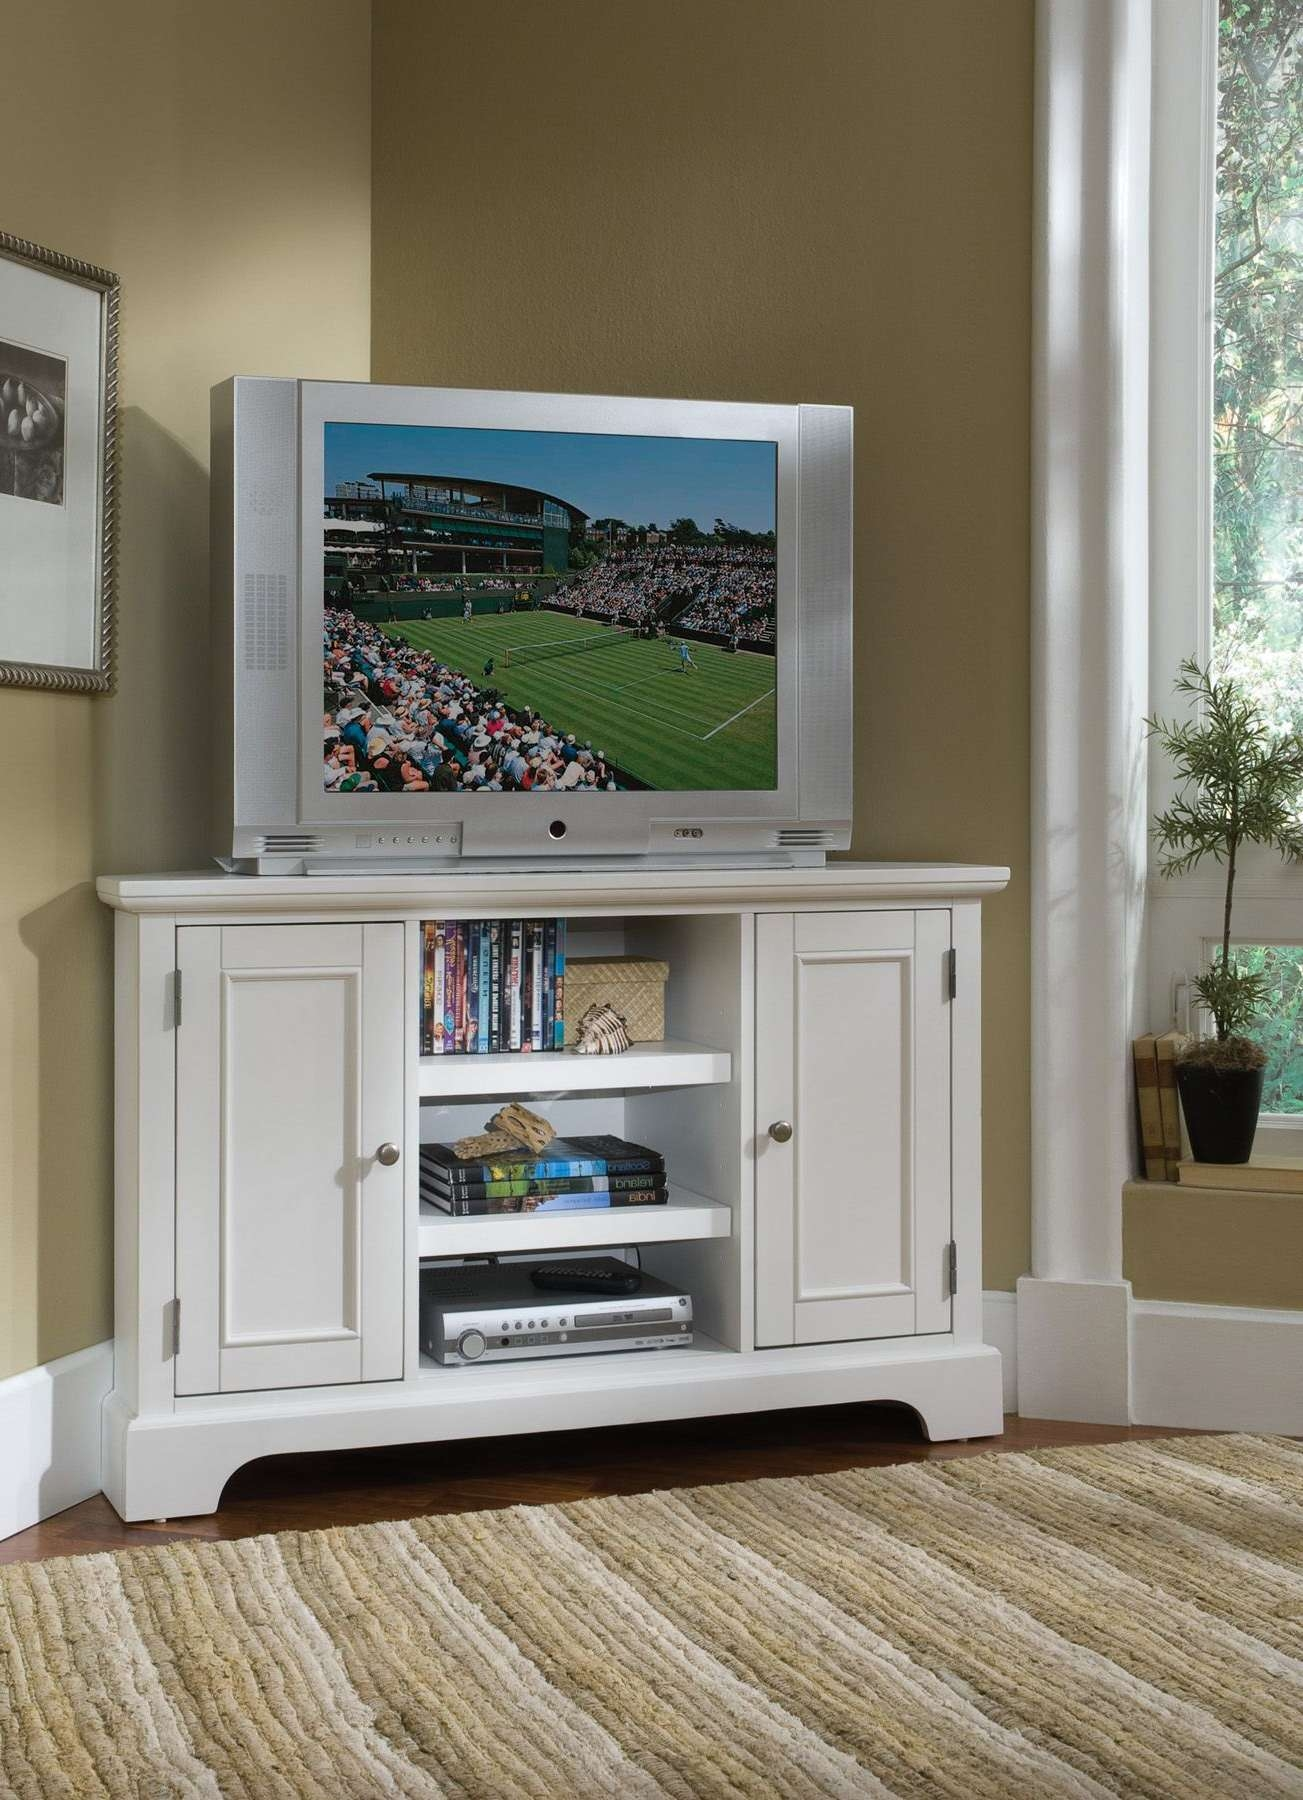 Unique Triangle Tv Stand 18 About Remodel Home Design Ideas With Regarding Triangle Tv Stands (View 6 of 15)